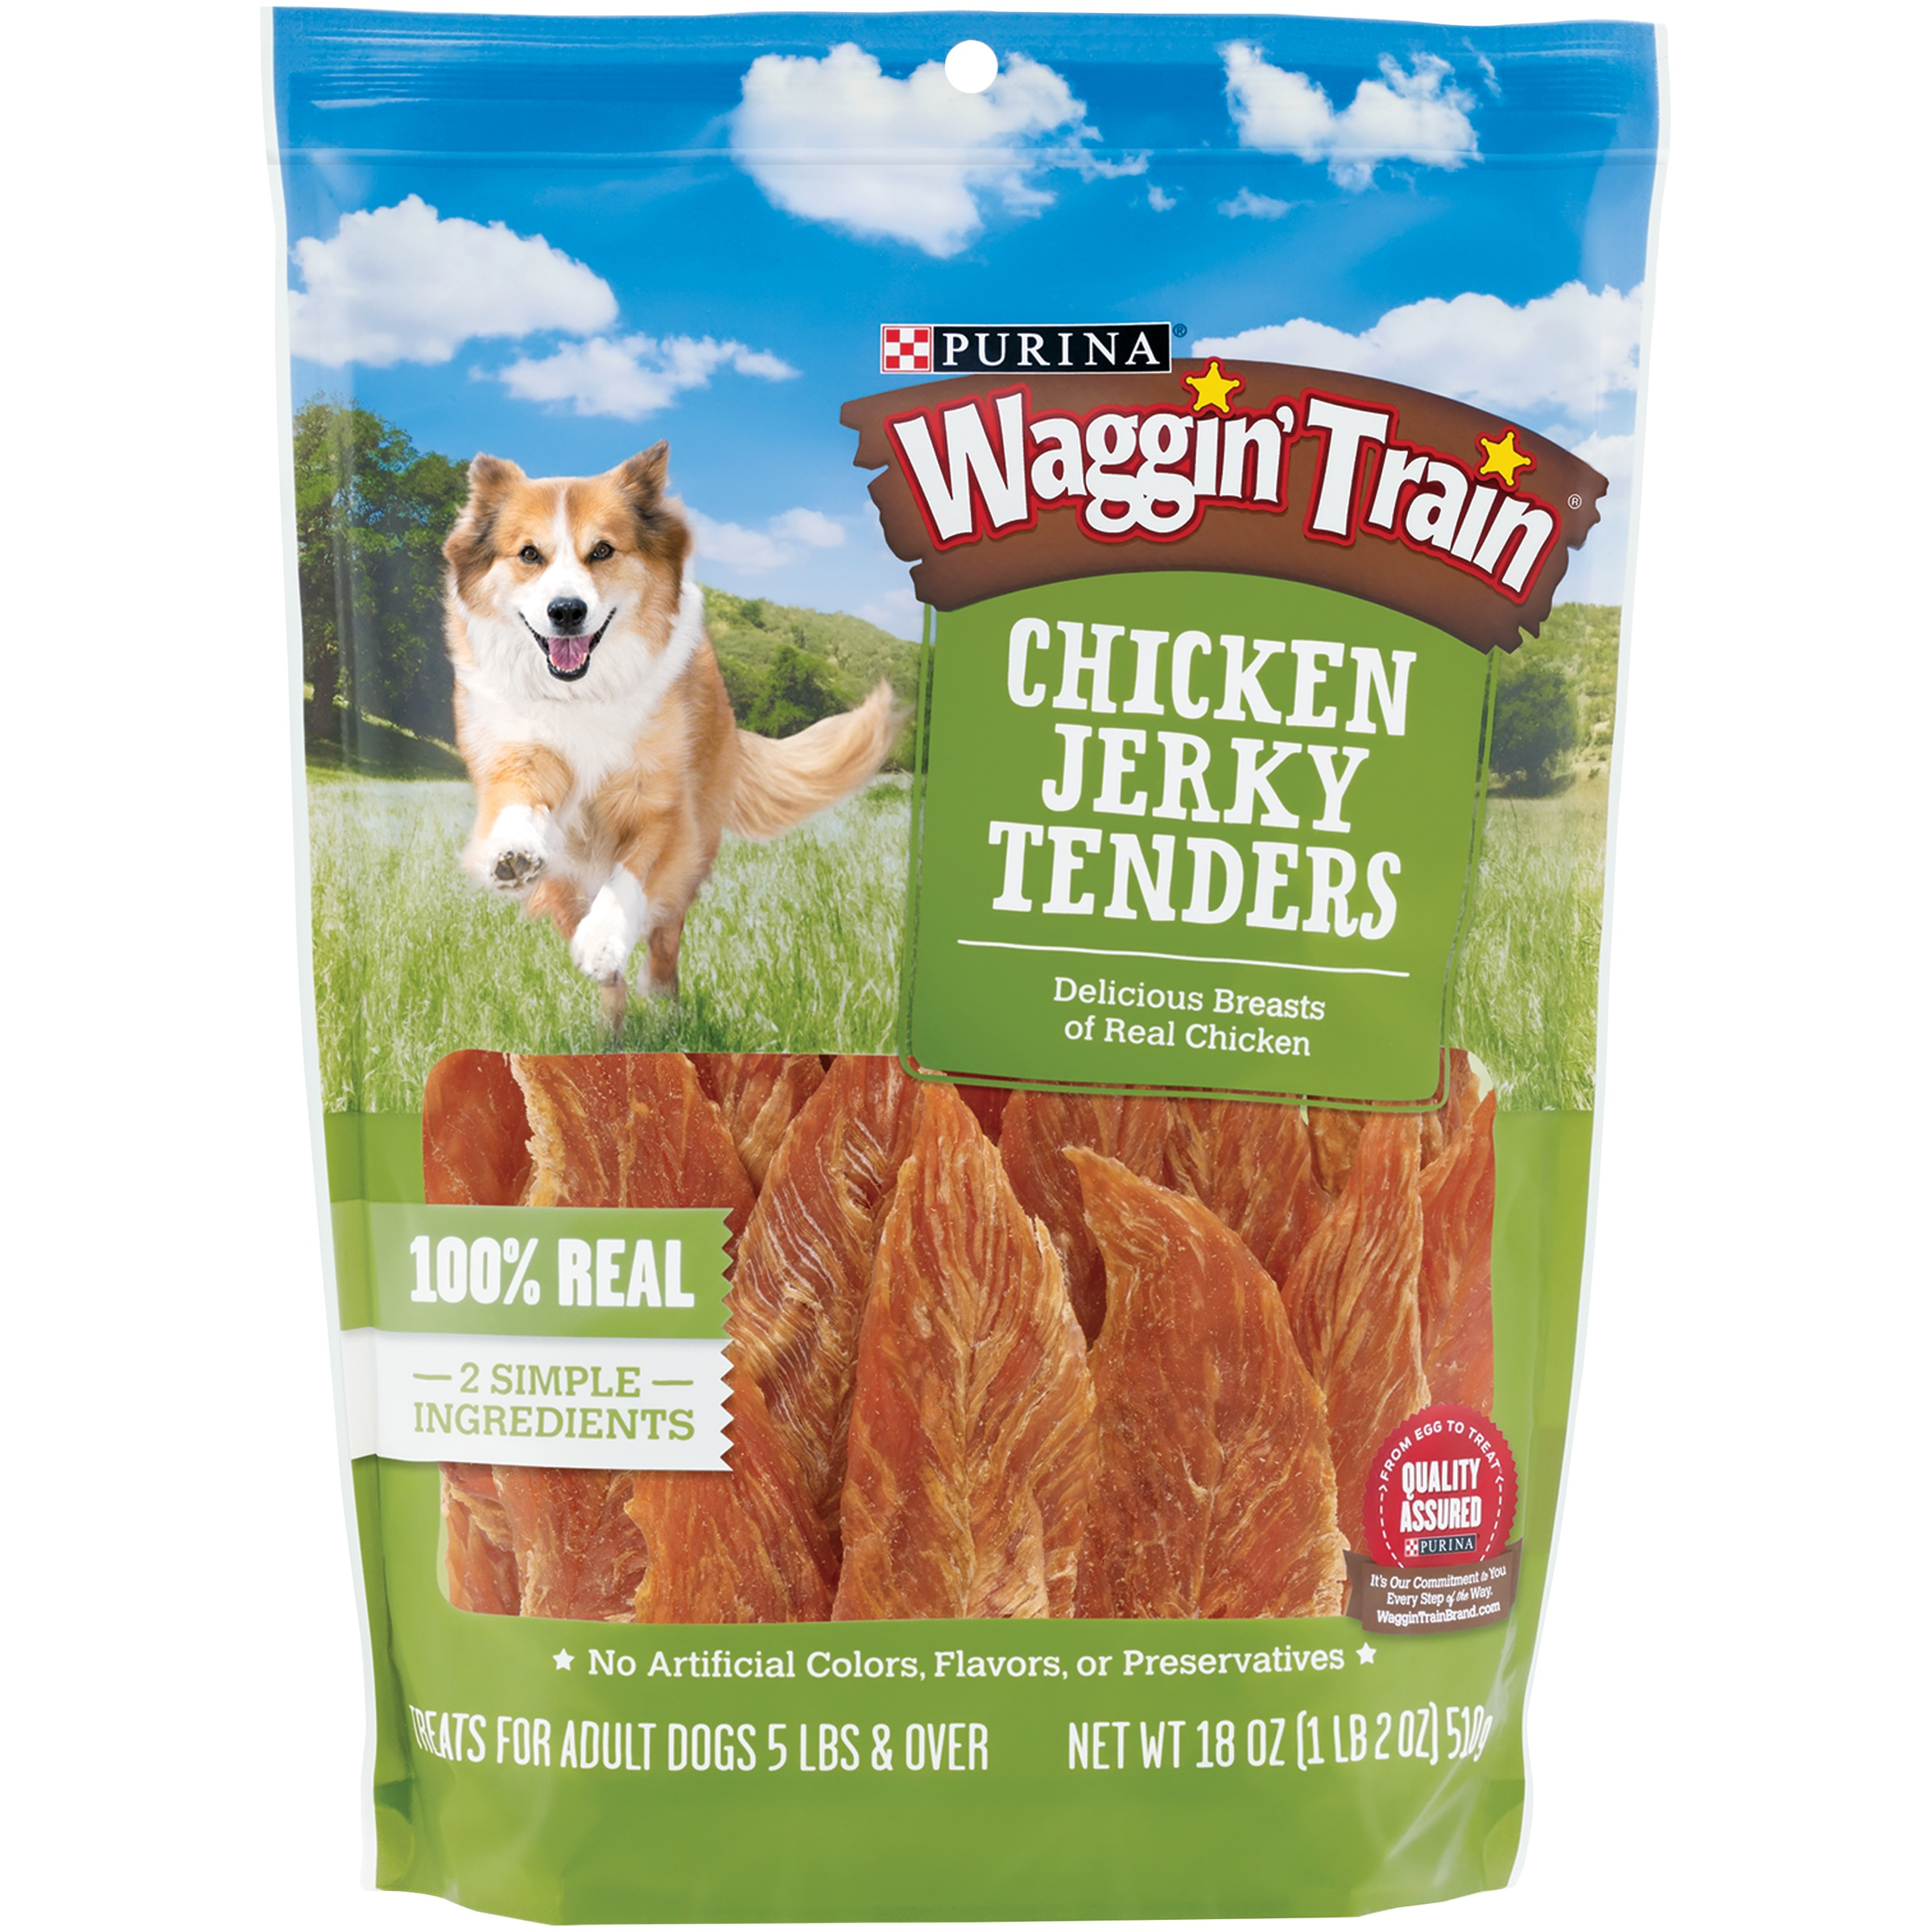 Purina Waggin' Train Chicken Jerky Tenders Dog Treats 18 oz. Pouch by Nestle Purina Petcare Company